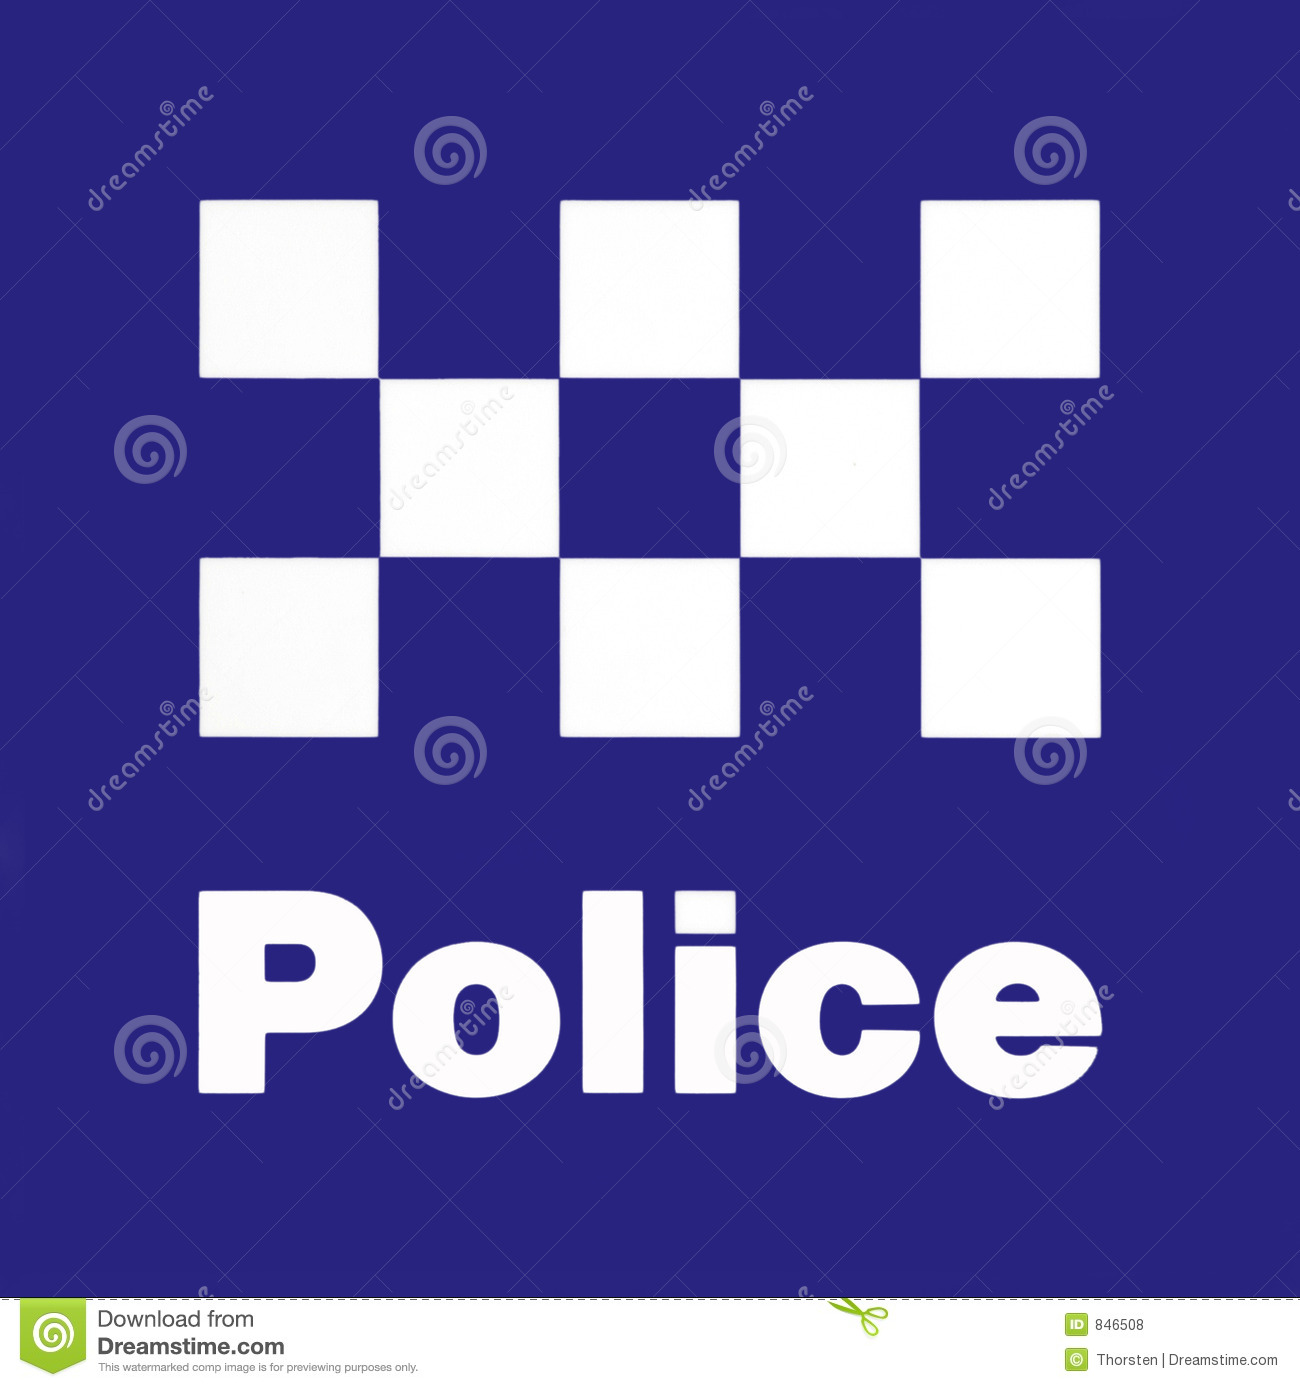 Police Station Sign Royalty Free Stock Photos - Image: 846508